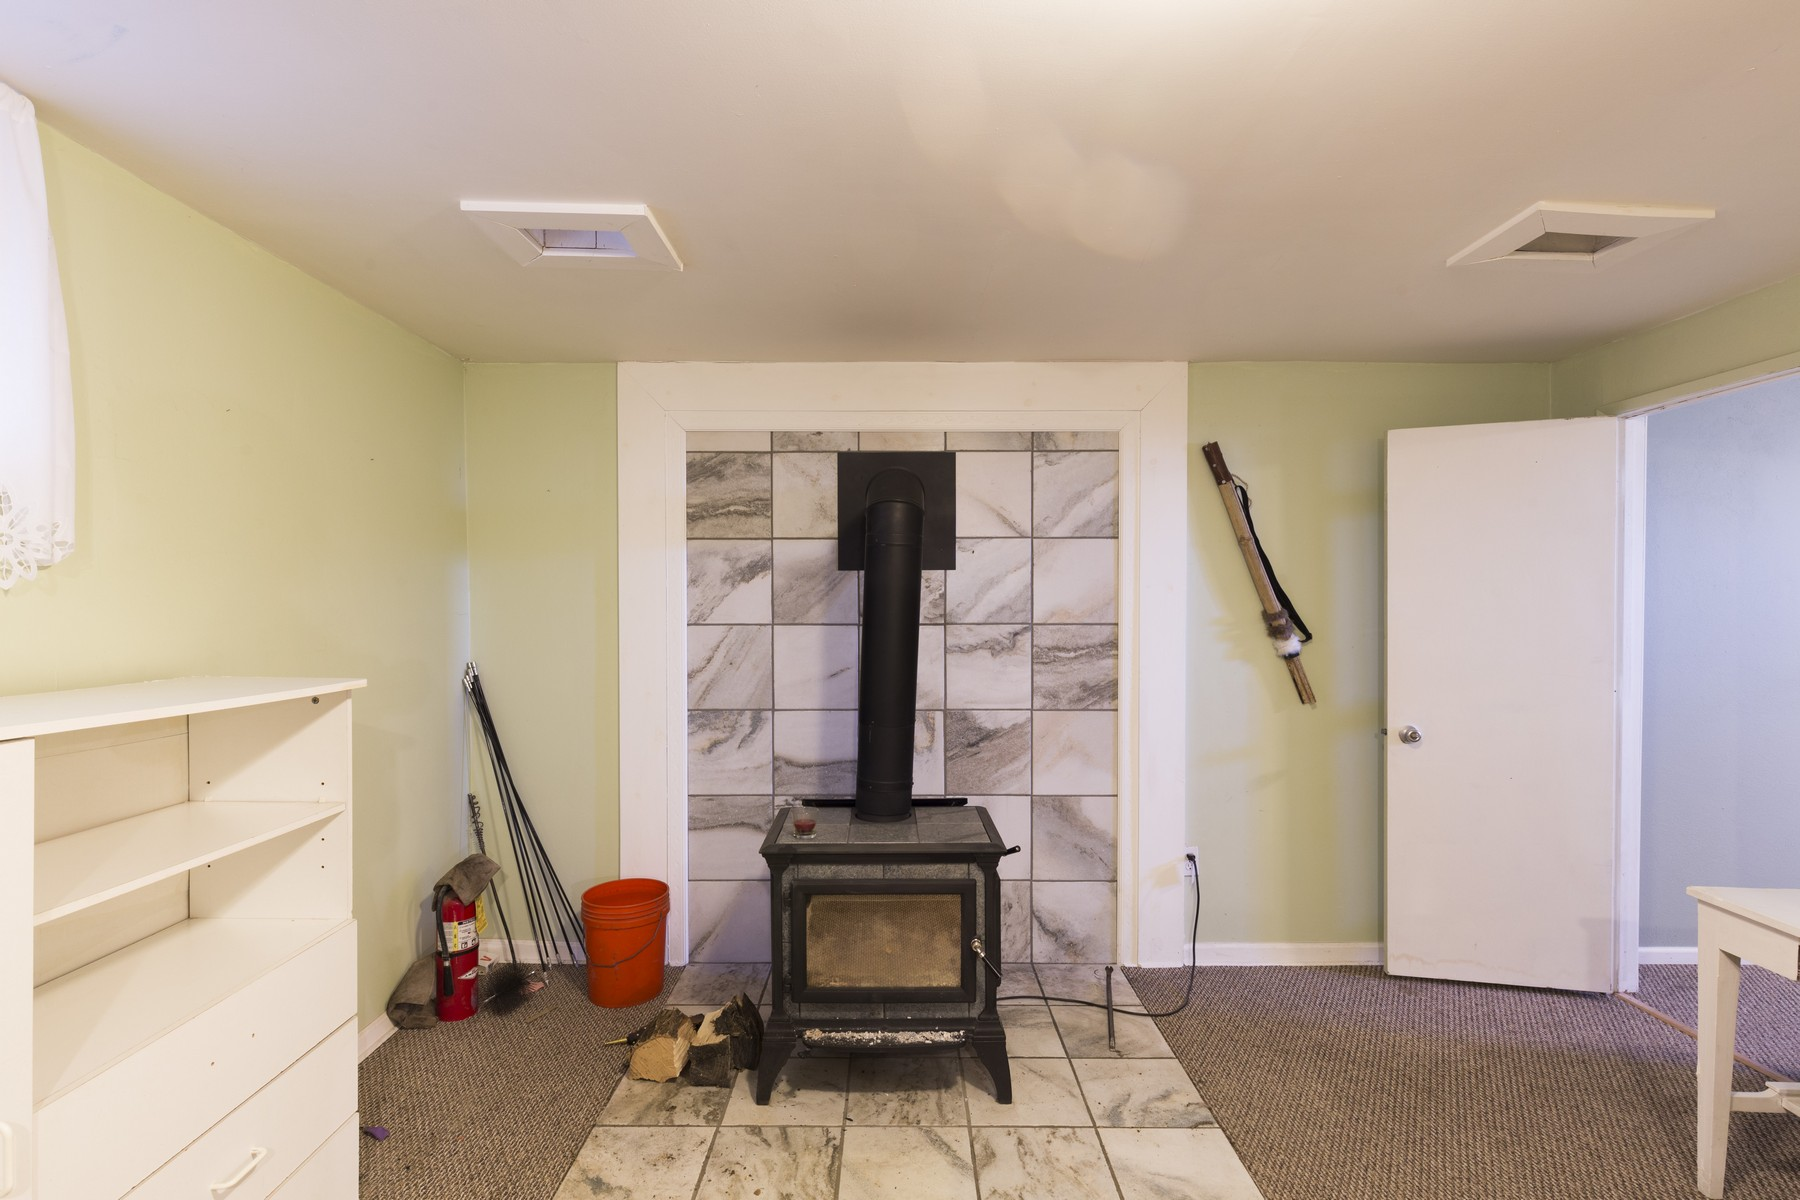 Additional photo for property listing at 178 Pioneer Rd , Kalispell, MT 59901 178  Pioneer Rd Kalispell, Montana 59901 United States